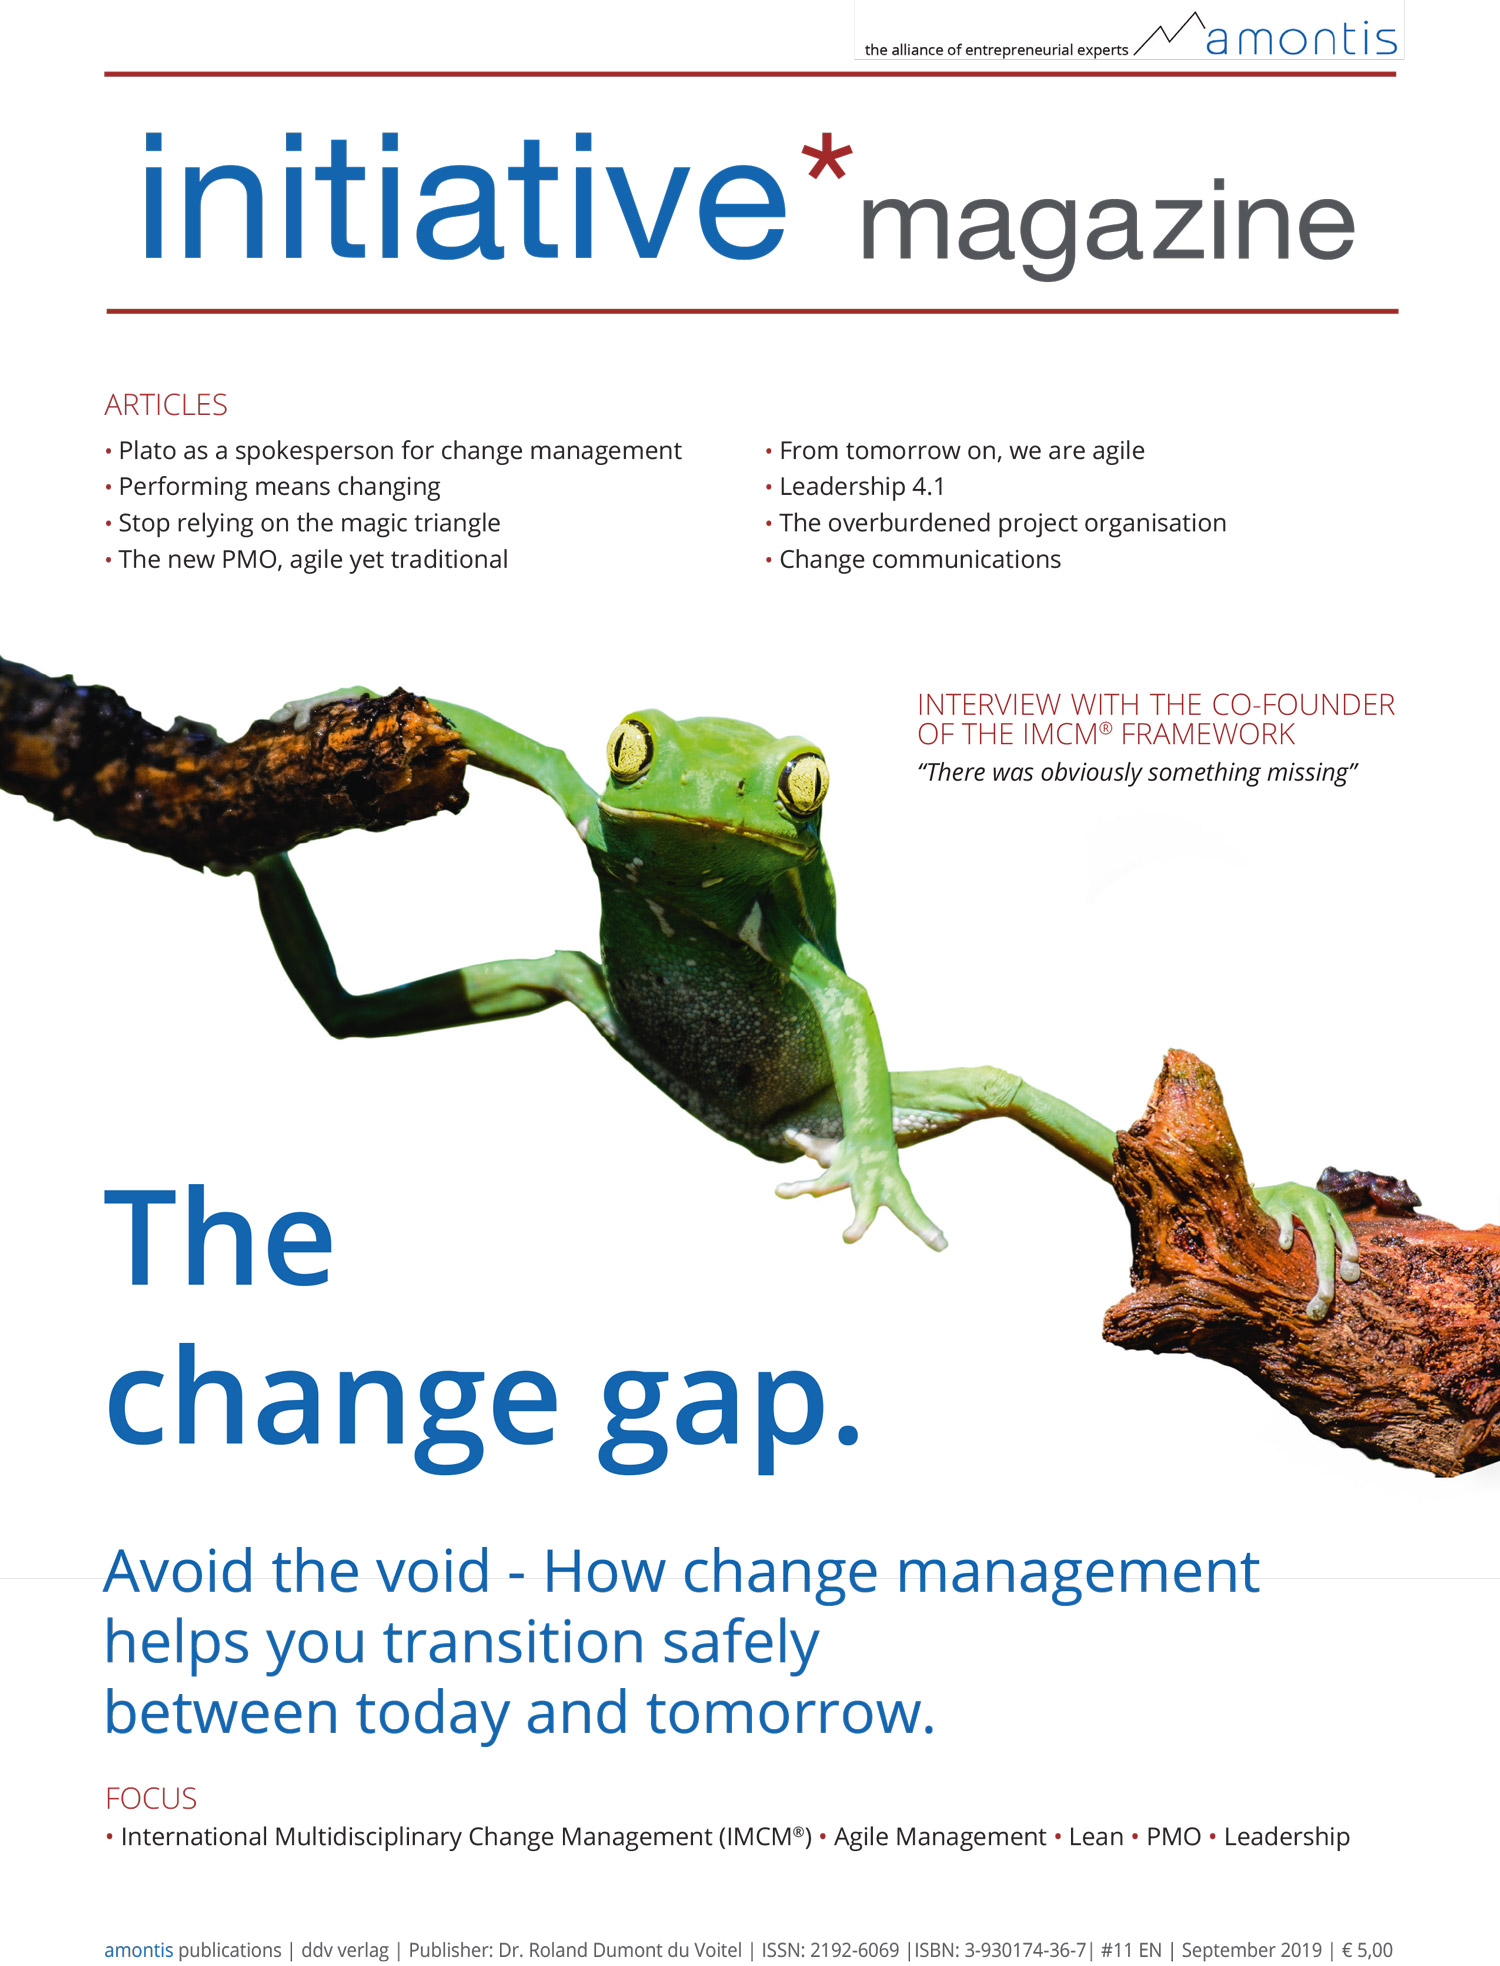 The change gap - initiative*magazine #11 (English edition)